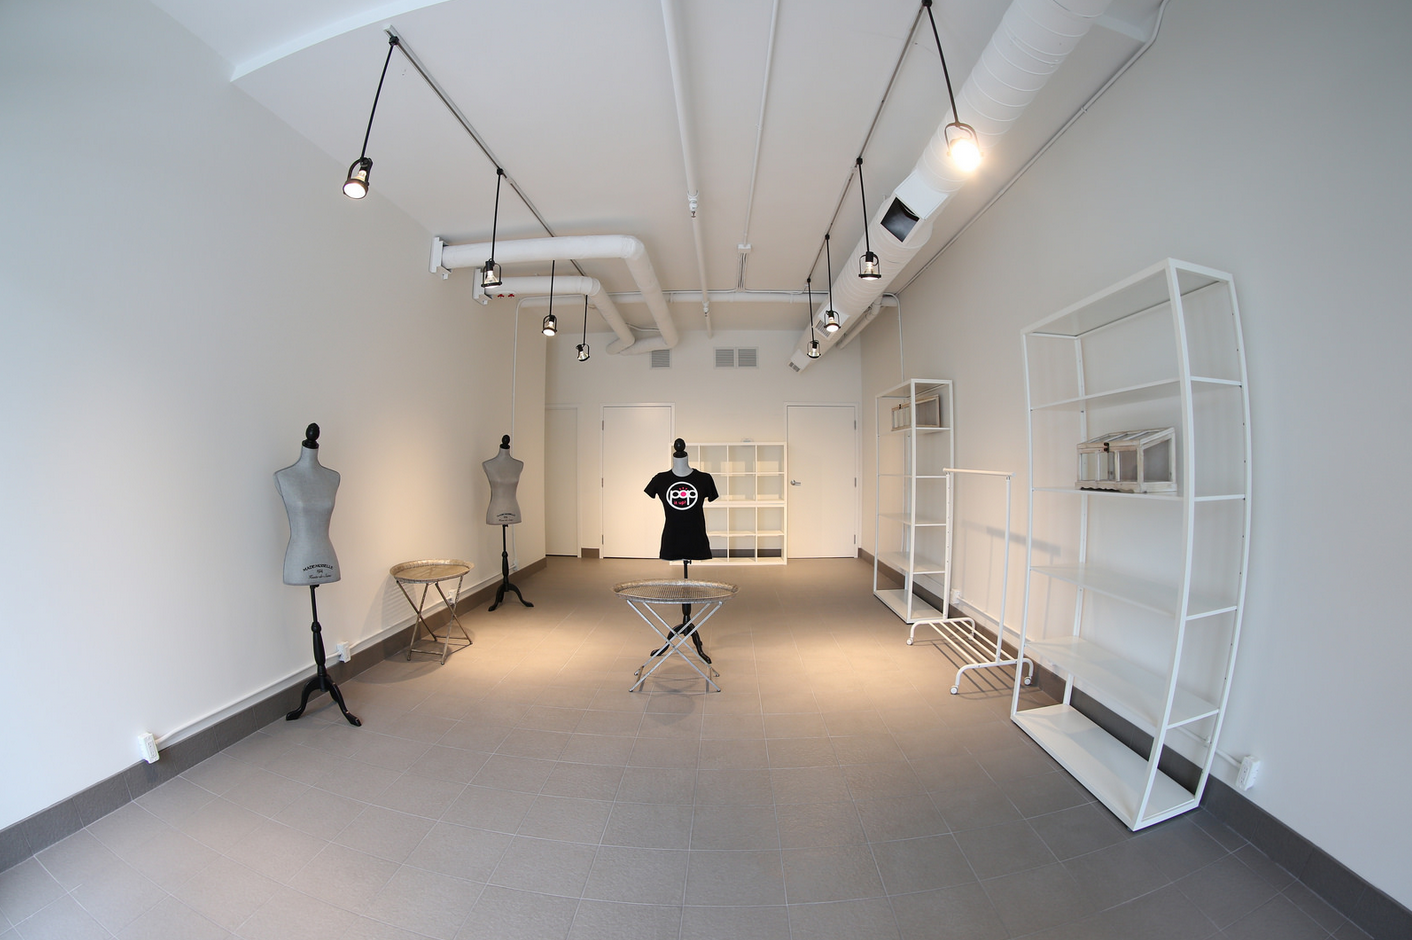 Empty store with tshirt